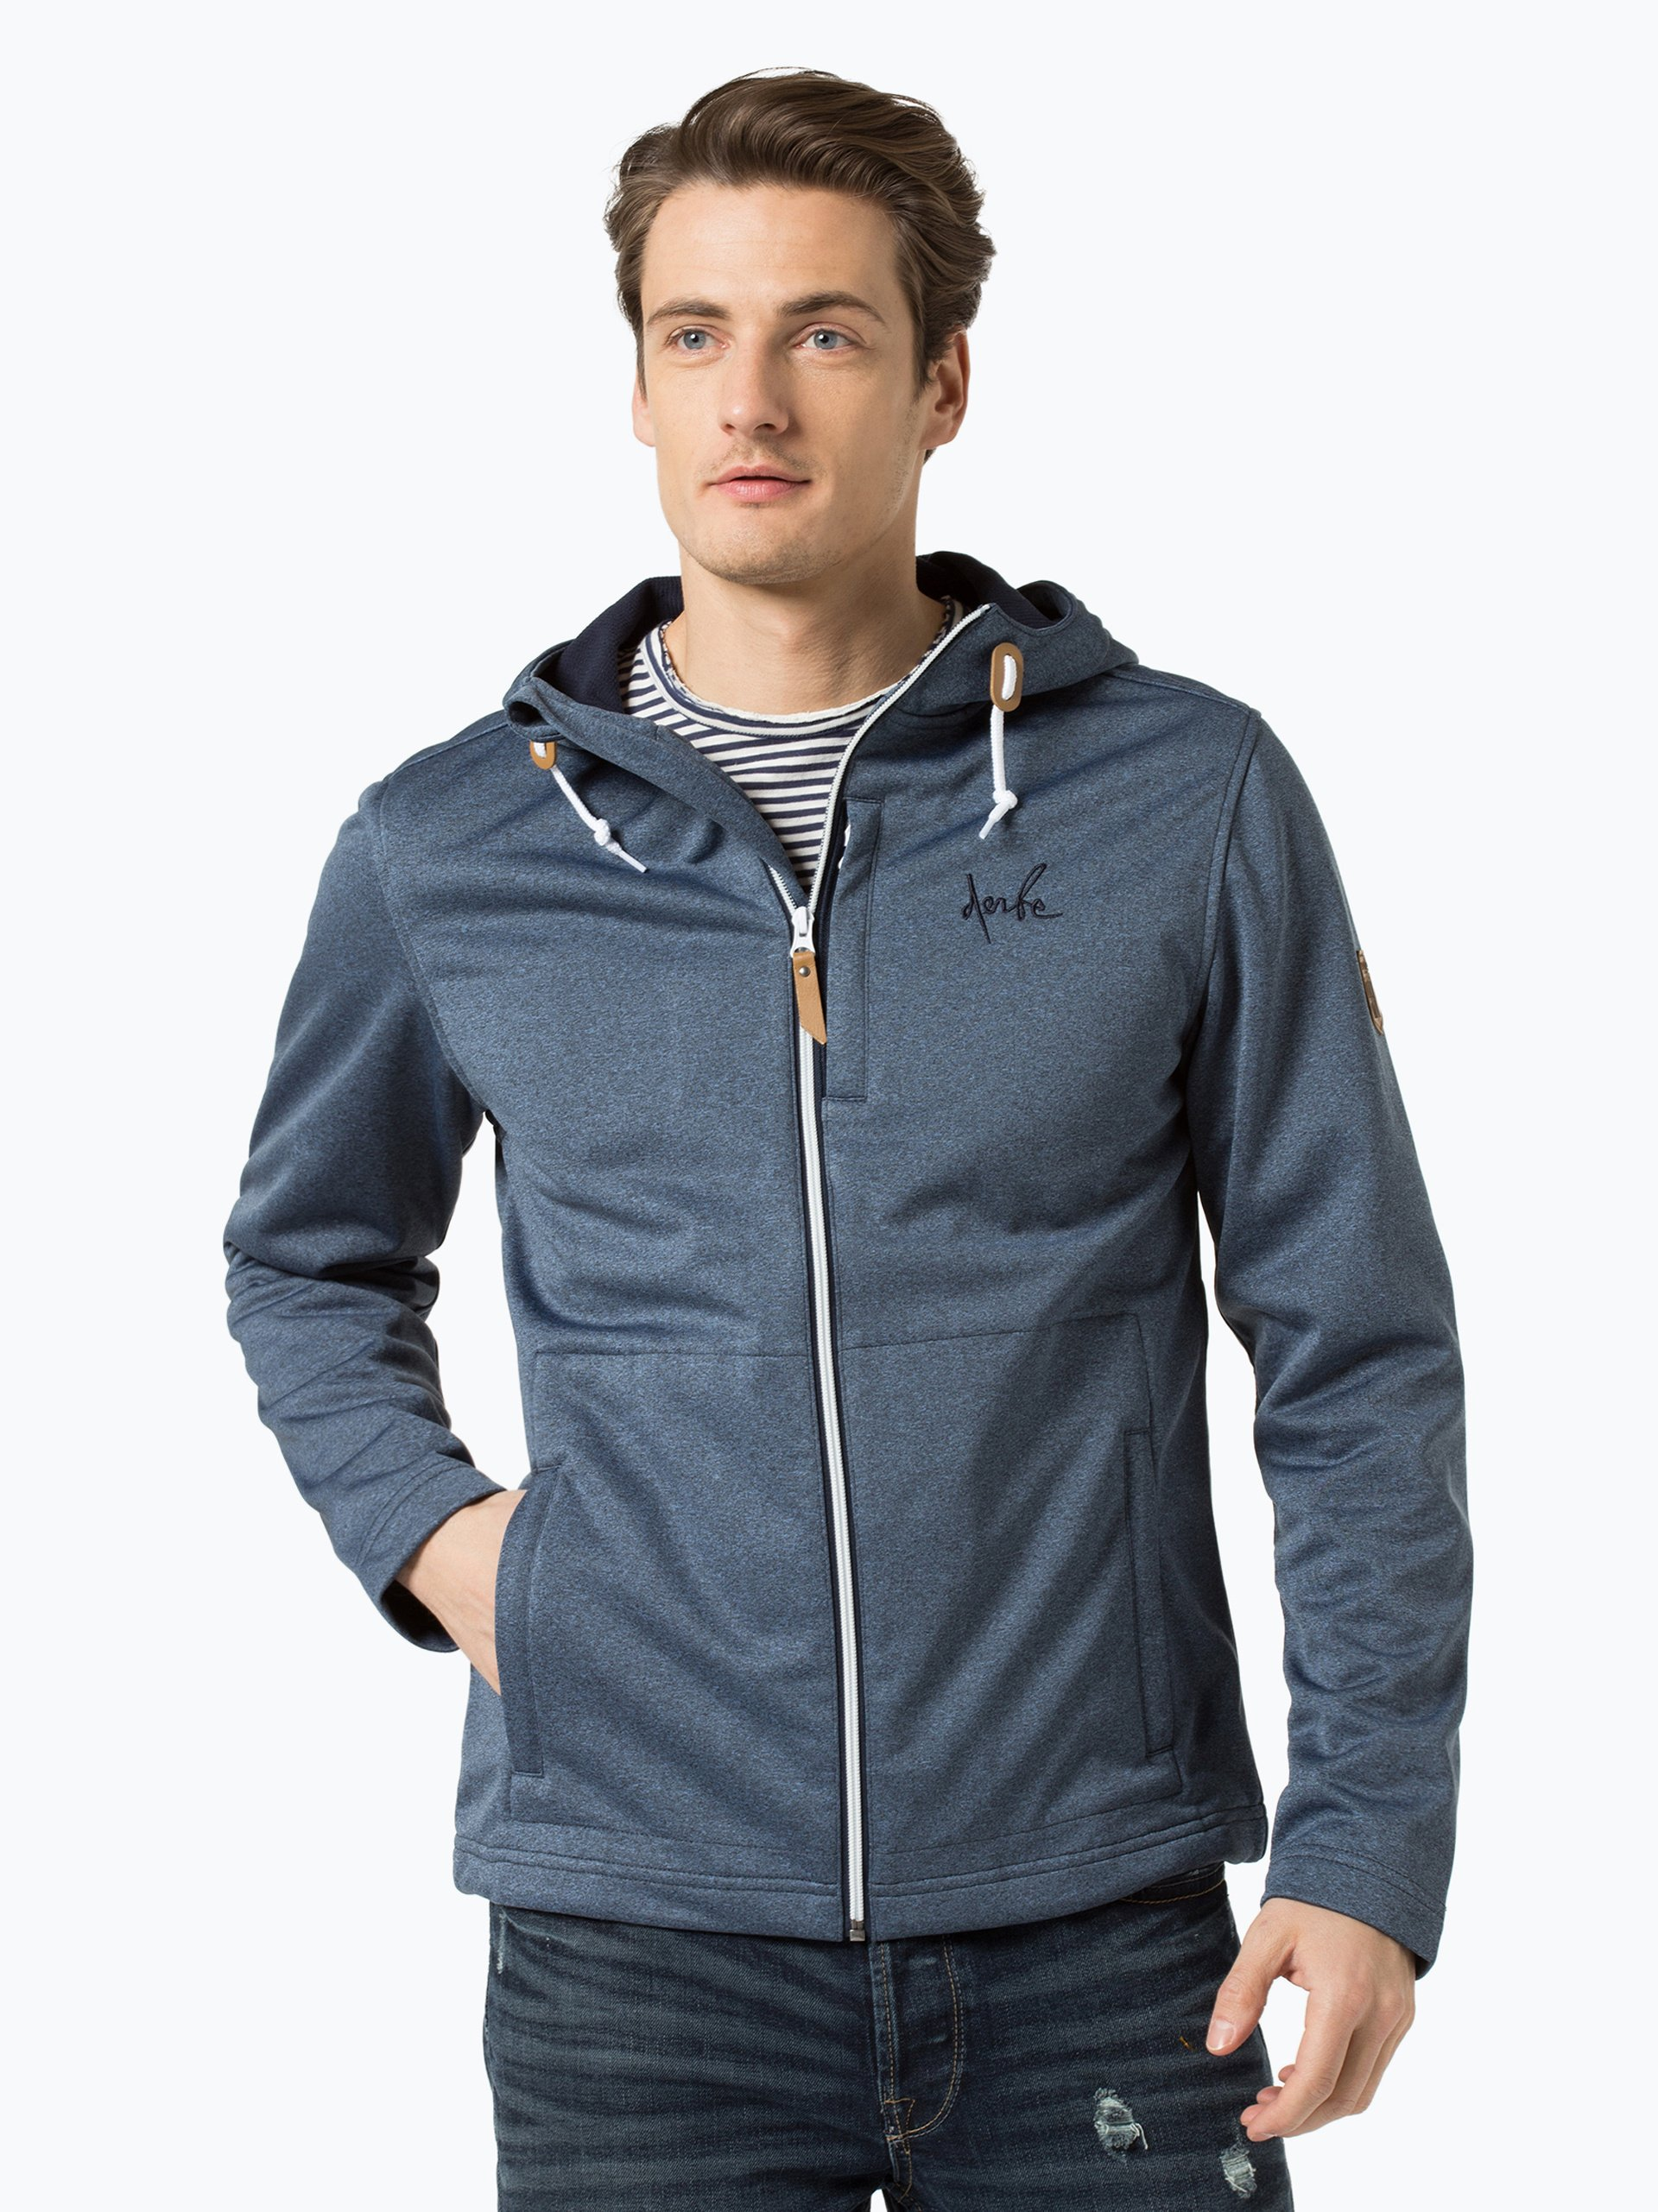 Derbe Herren Funktionsjacke - Isle of Skye